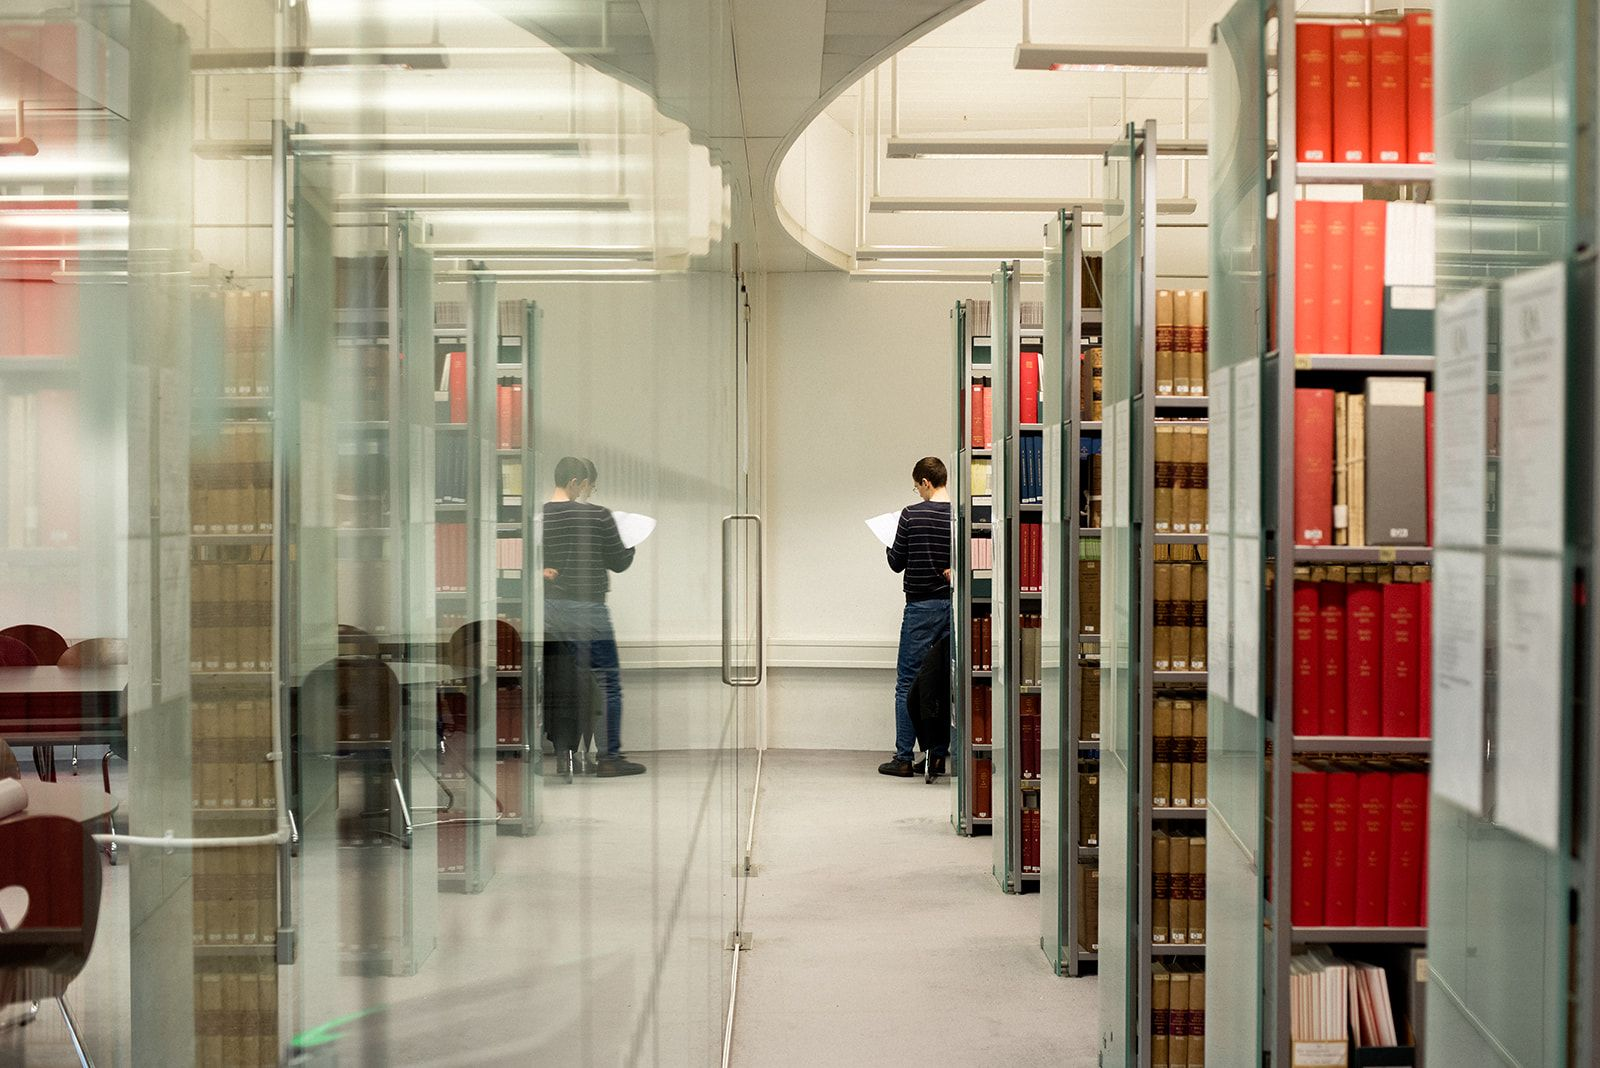 Corridor of shelves at the Moore Library with person consulting journal